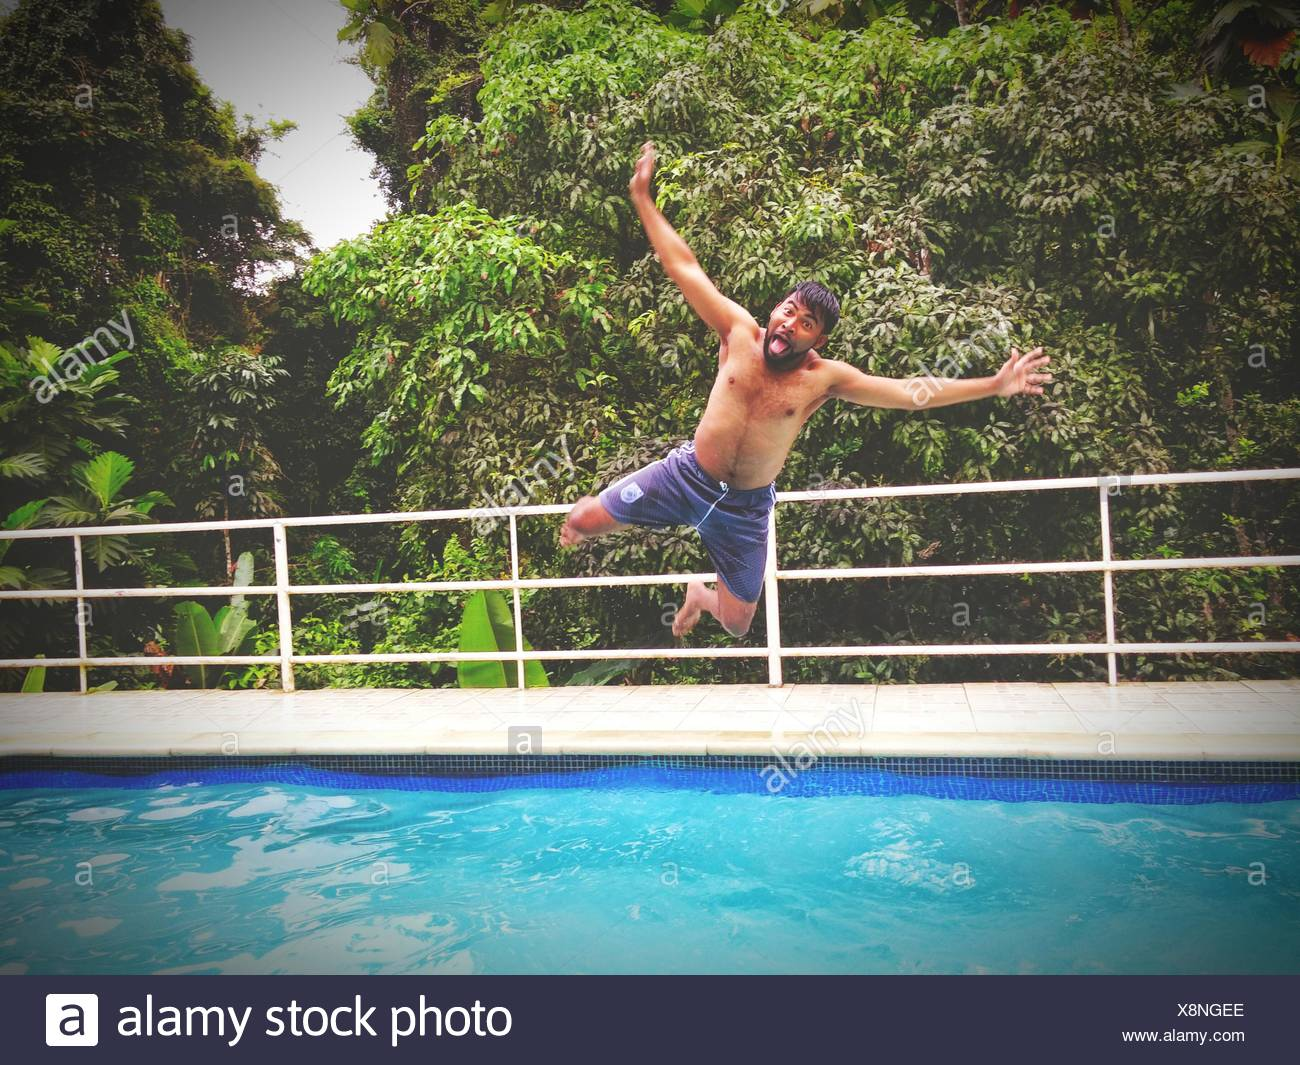 Diving Into Pool Stock Photos Diving Into Pool Stock Images Alamy